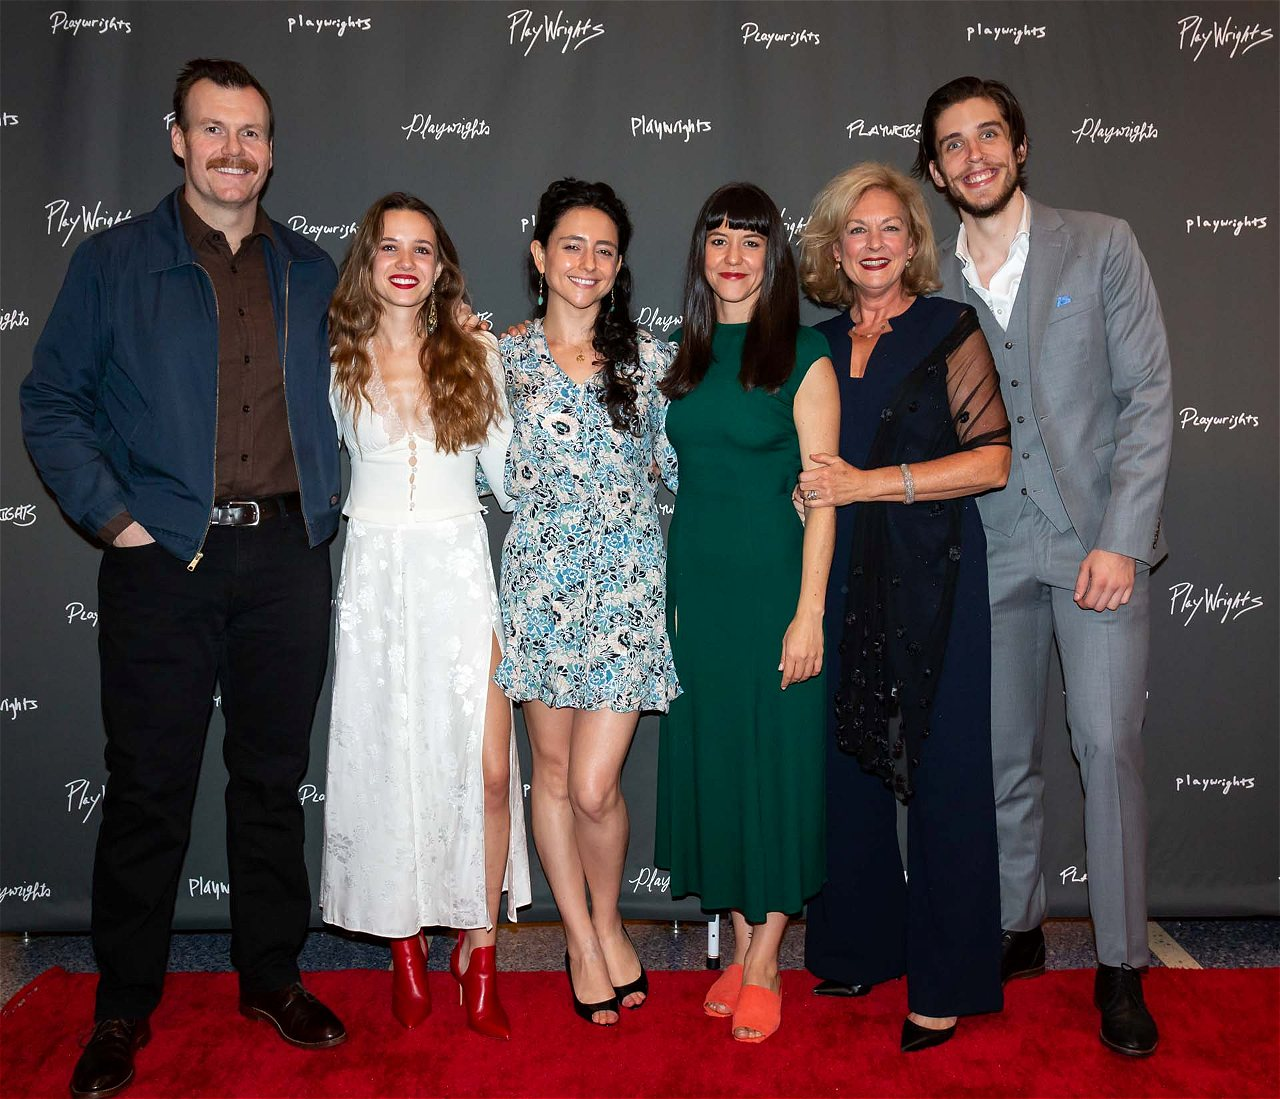 Heroes of the Fourth Turning Opening Night at Playwrights Horizons